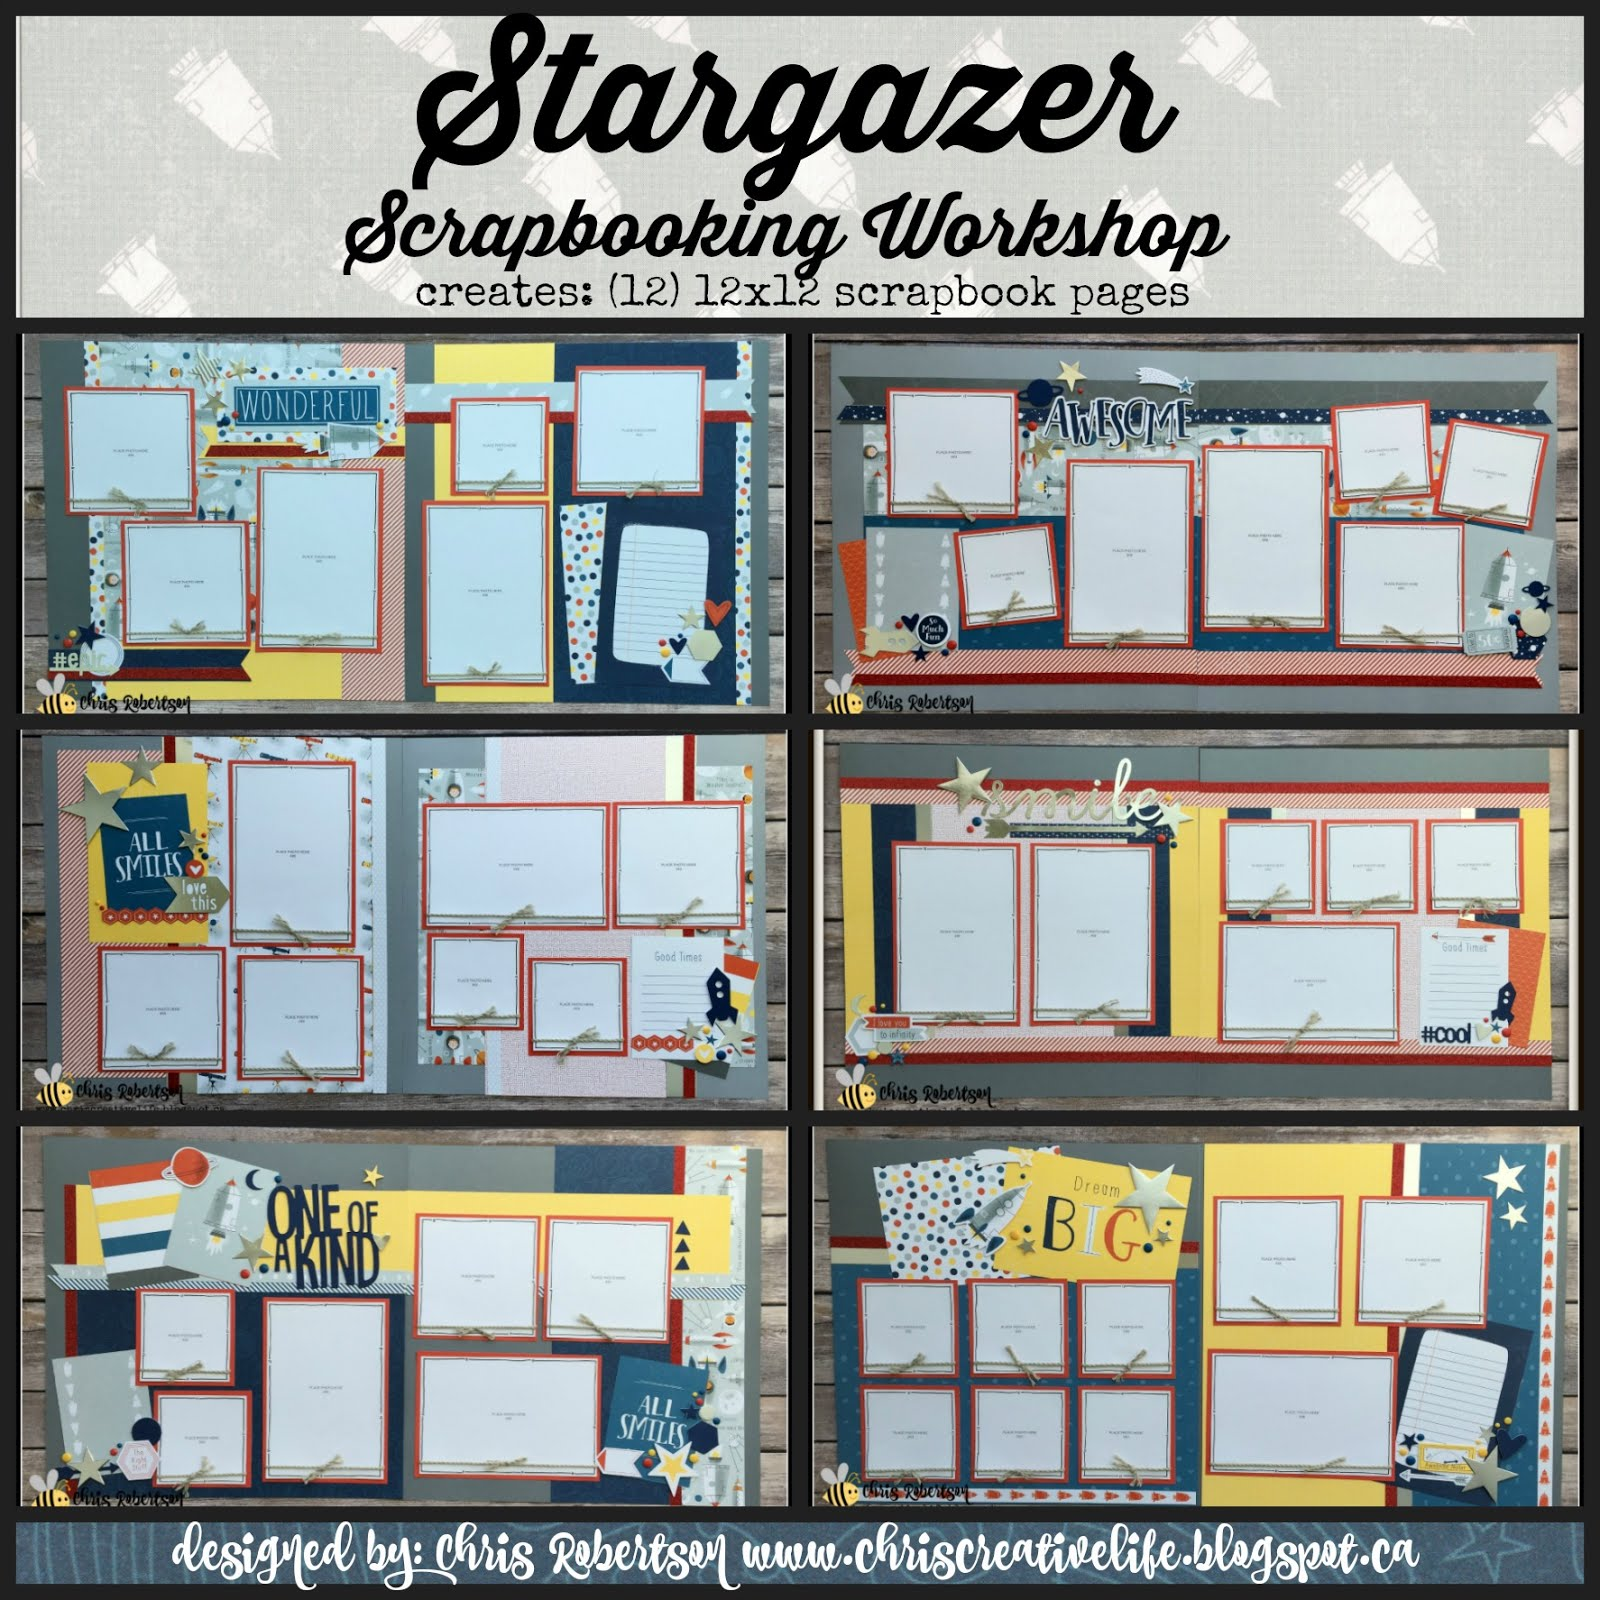 Stargazer Scrapbooking Workshop Guide & E-files